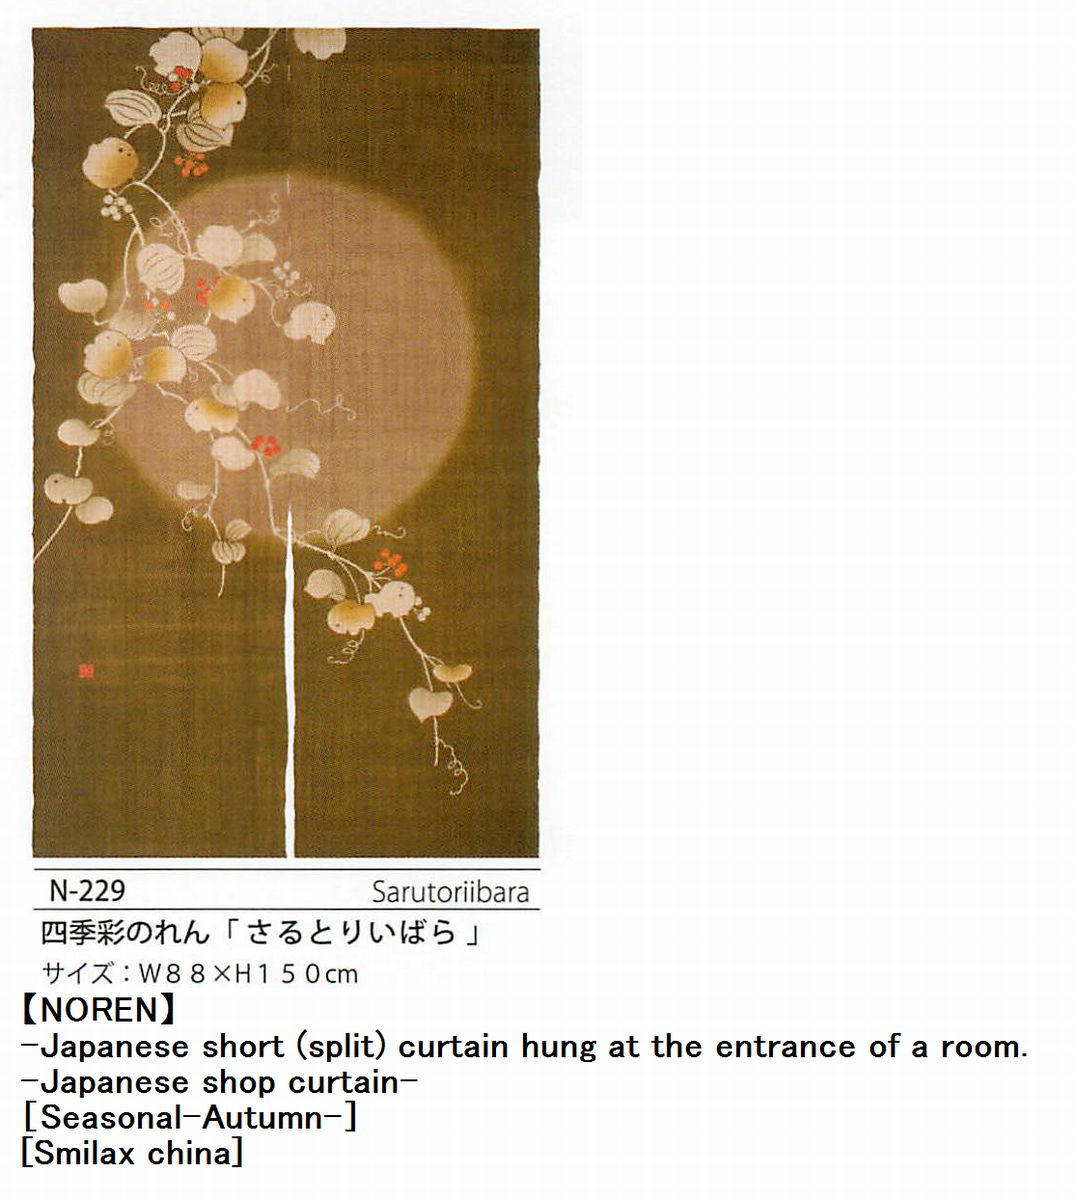 和雑貨 暖簾 のれん インテリア【さるとりいばら】【NOREN】-Japanese short (split) curtain hung at the entrance of a room.-Japanese shop curtain-[Seasonal-Autumn-][Smilax china] Tapestry